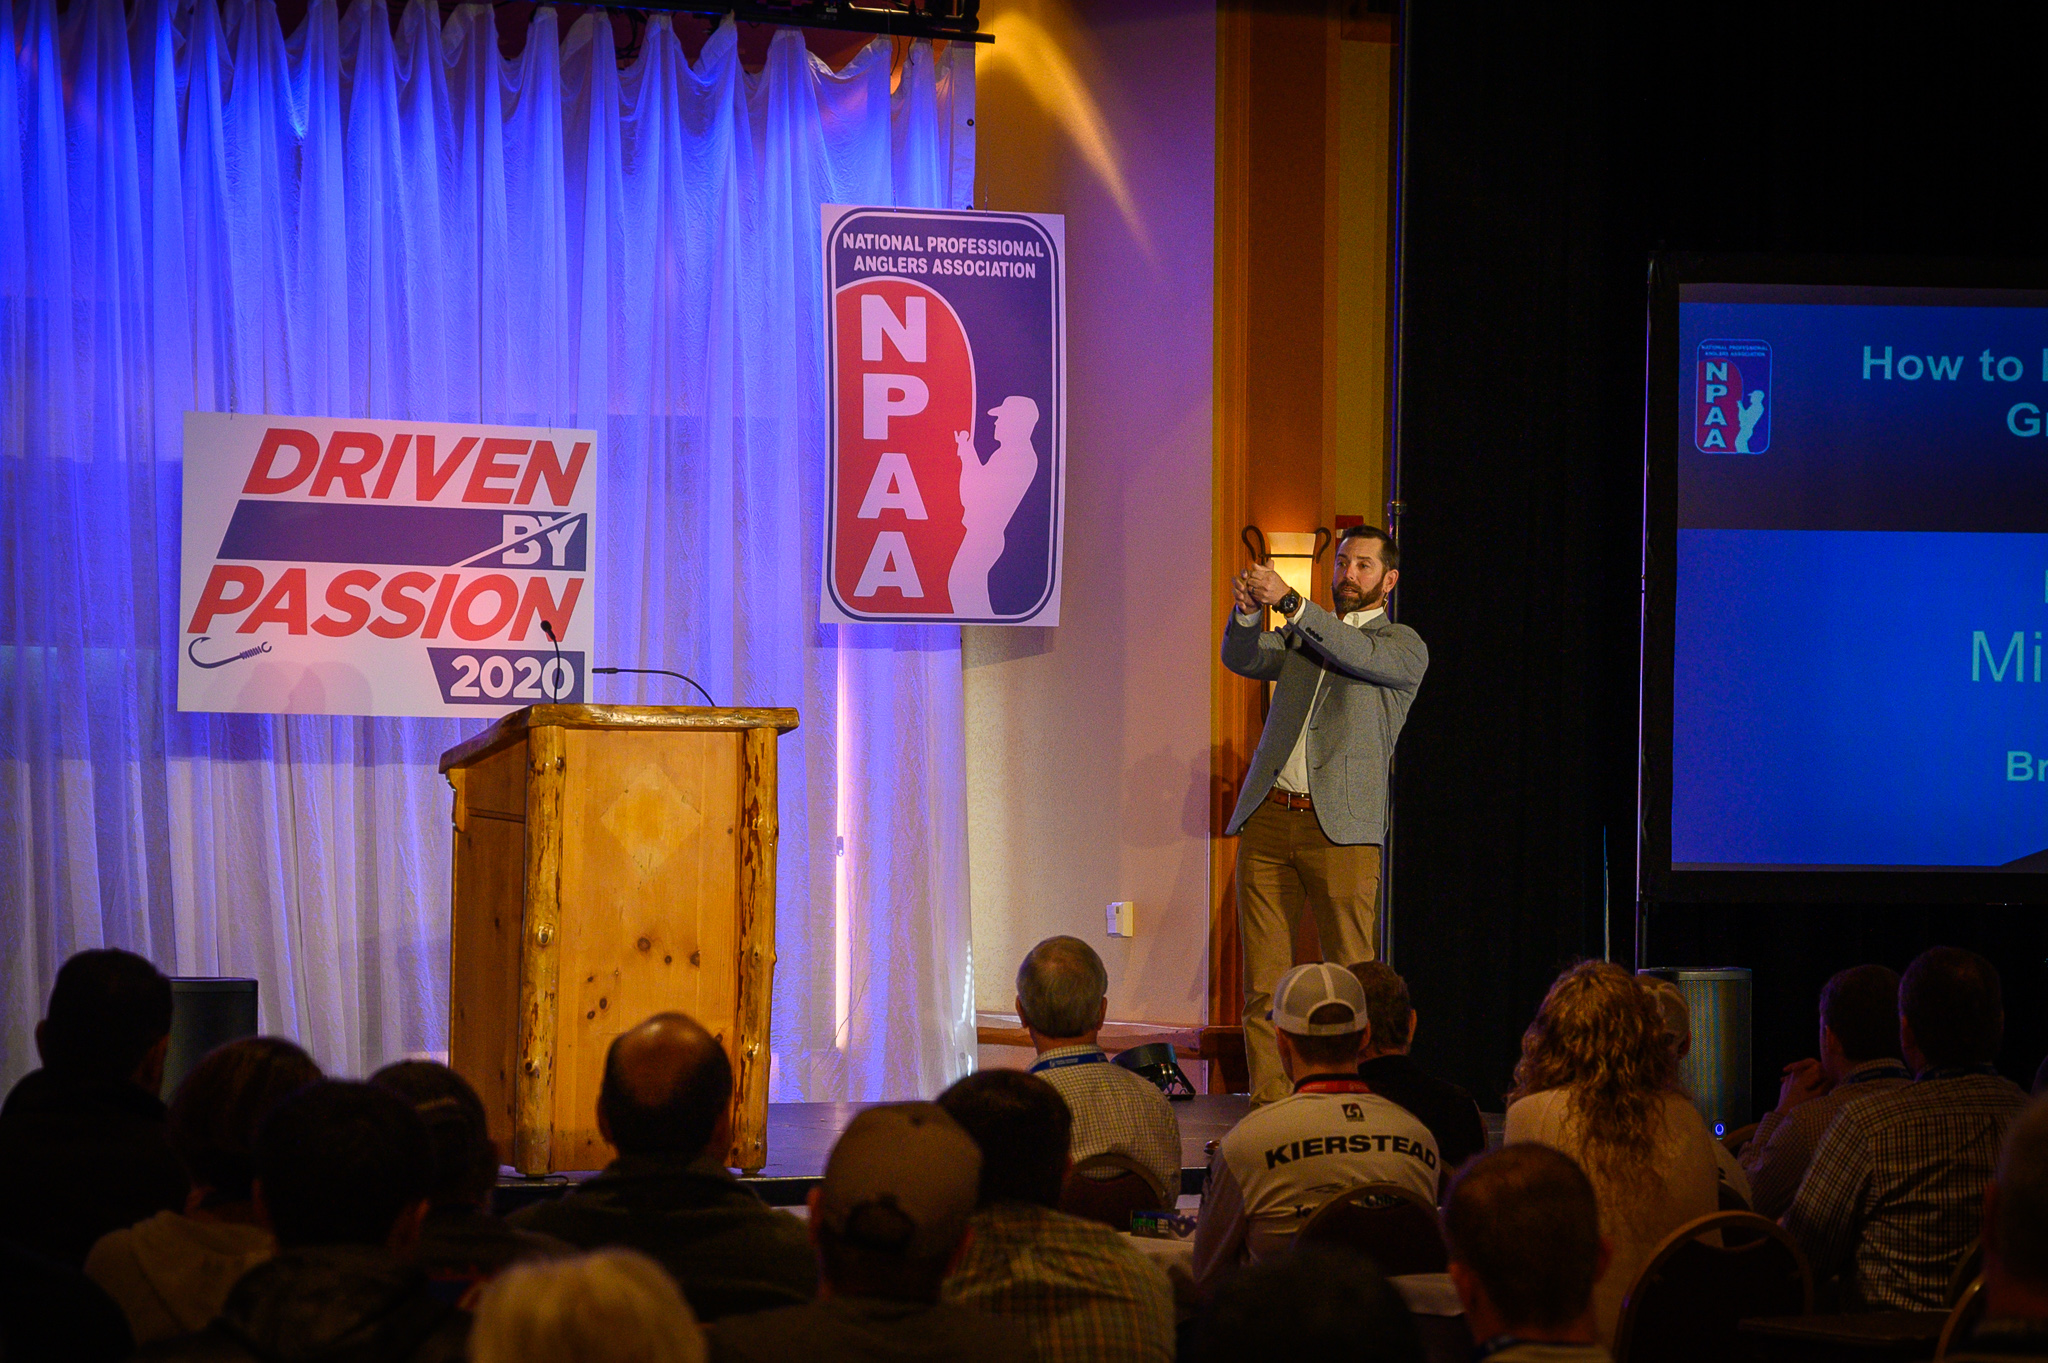 Mike Iaconelli Speaks at NPAA Conference